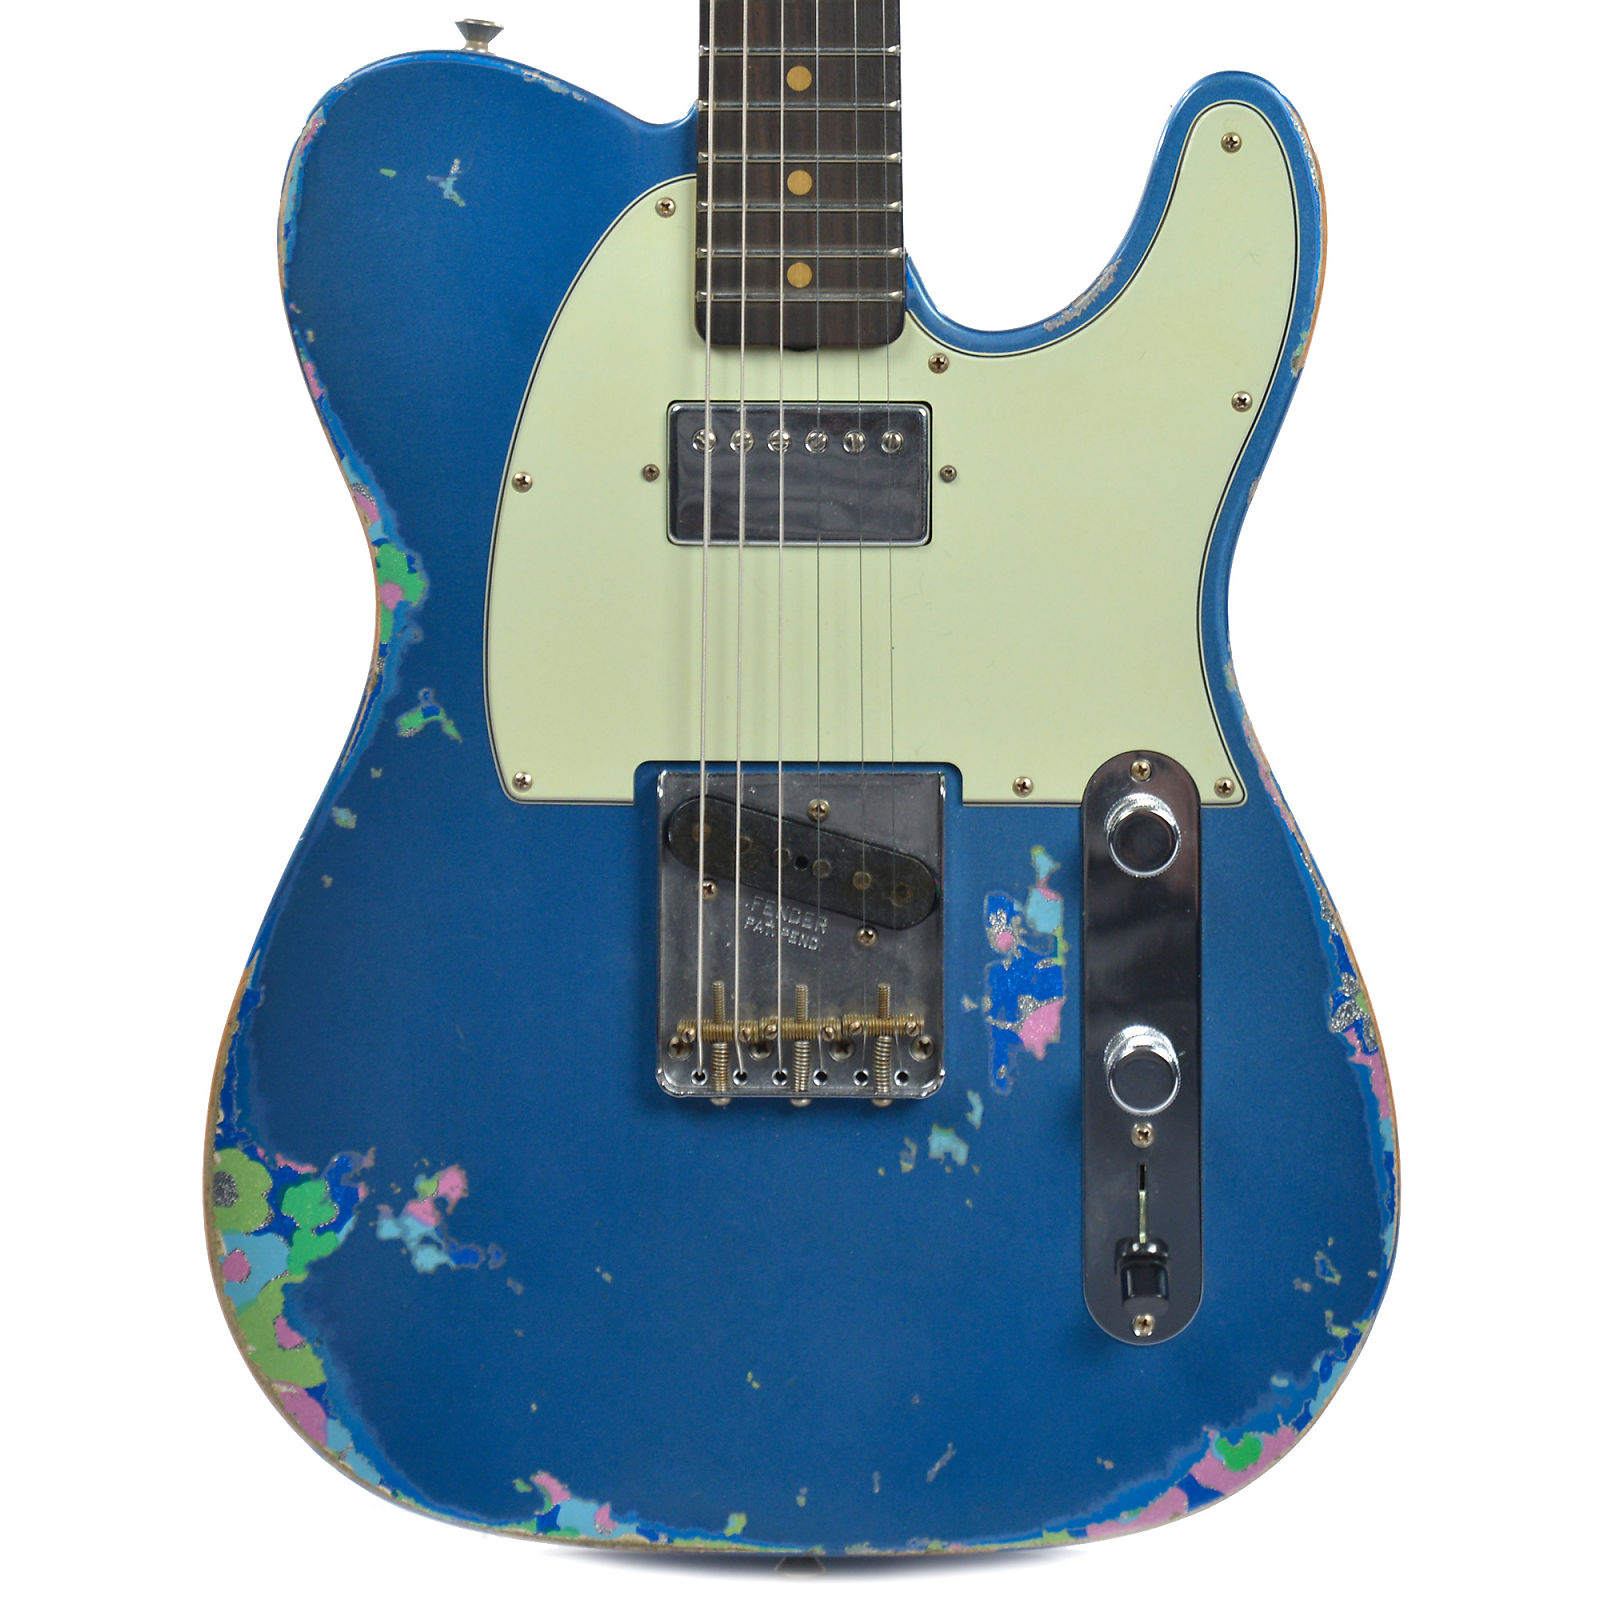 Limited 60s hs telecaster heavy relic aged lake placid blue over limited 60s hs telecaster heavy relic aged lake placid blue over blue flower fender custom shop electric guitars publicscrutiny Gallery